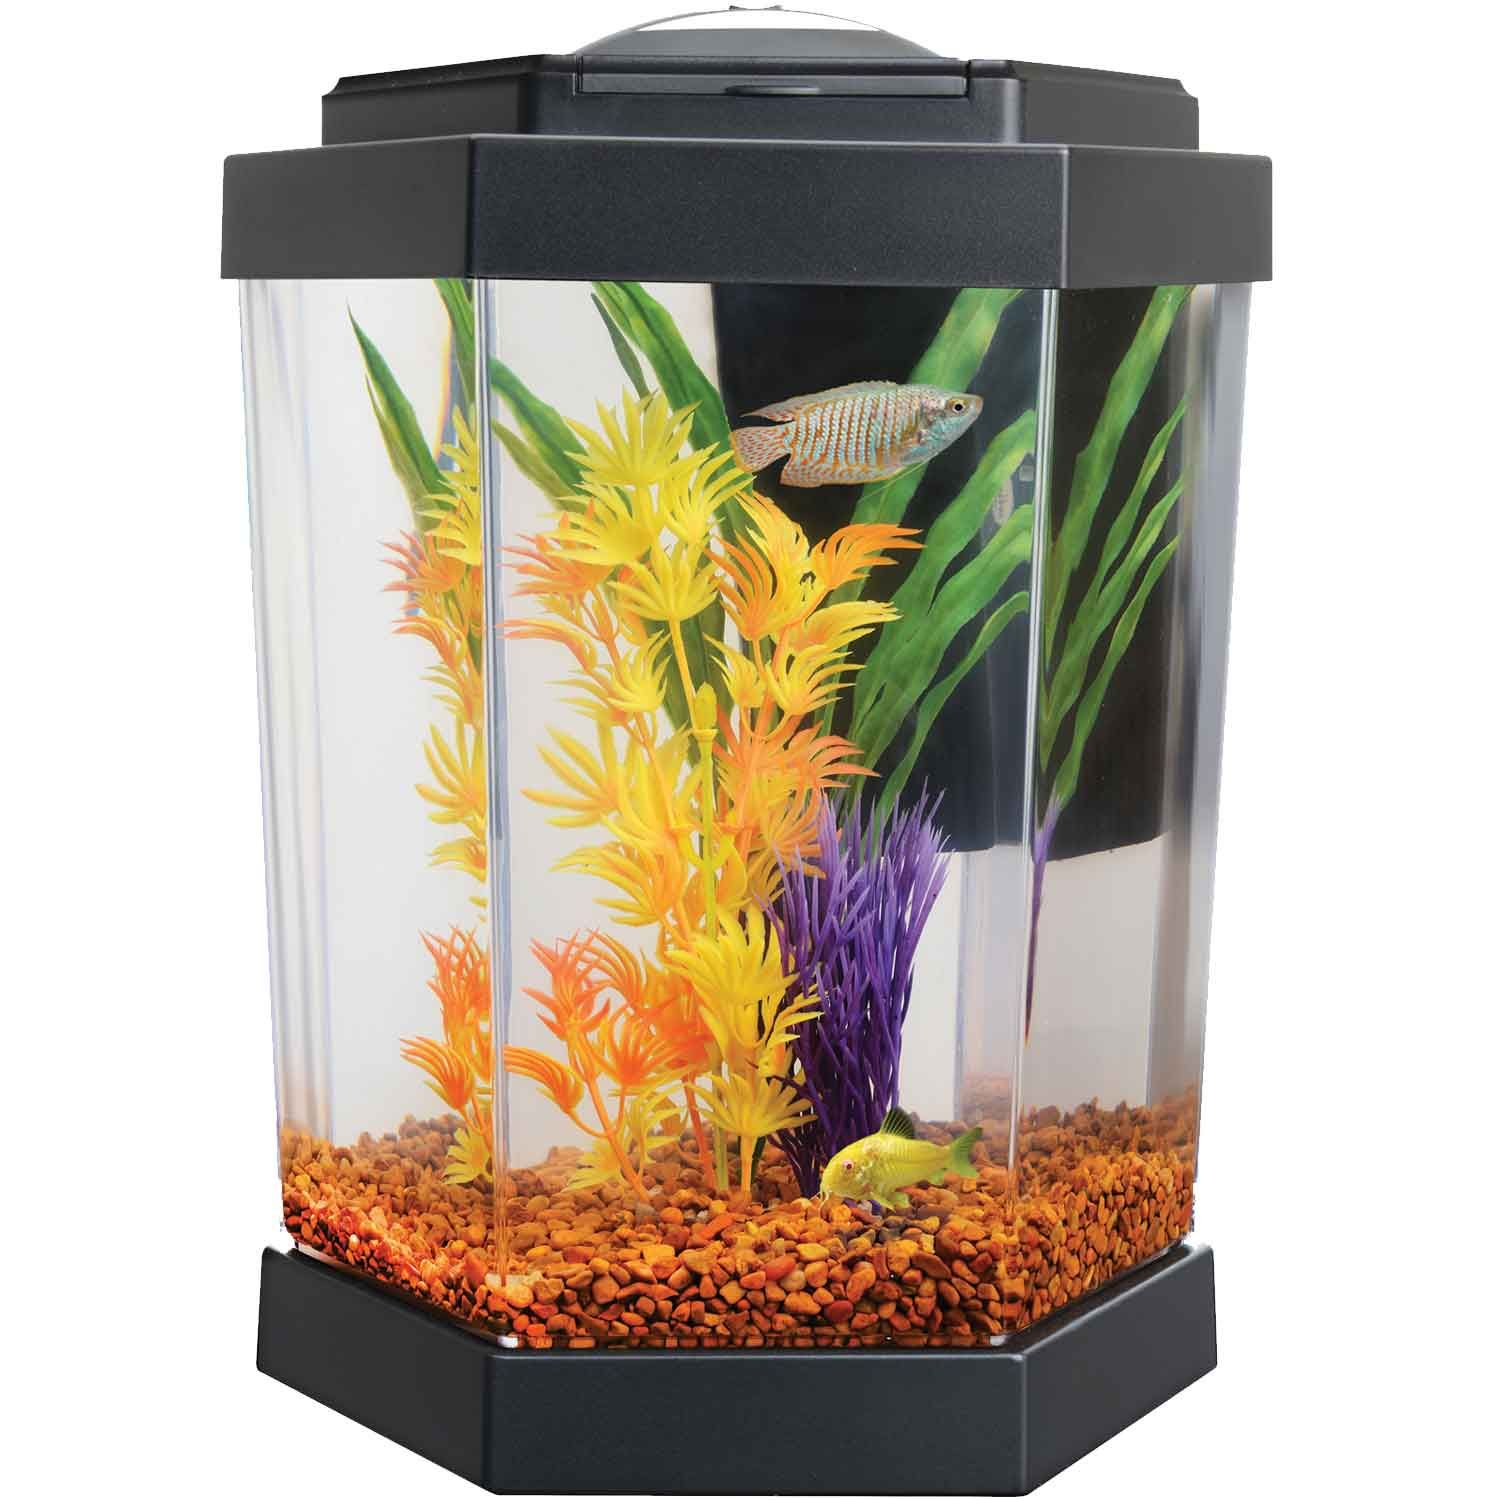 Petco Hex Freshwater Aquarium Food Animals Goldfish Tank Small